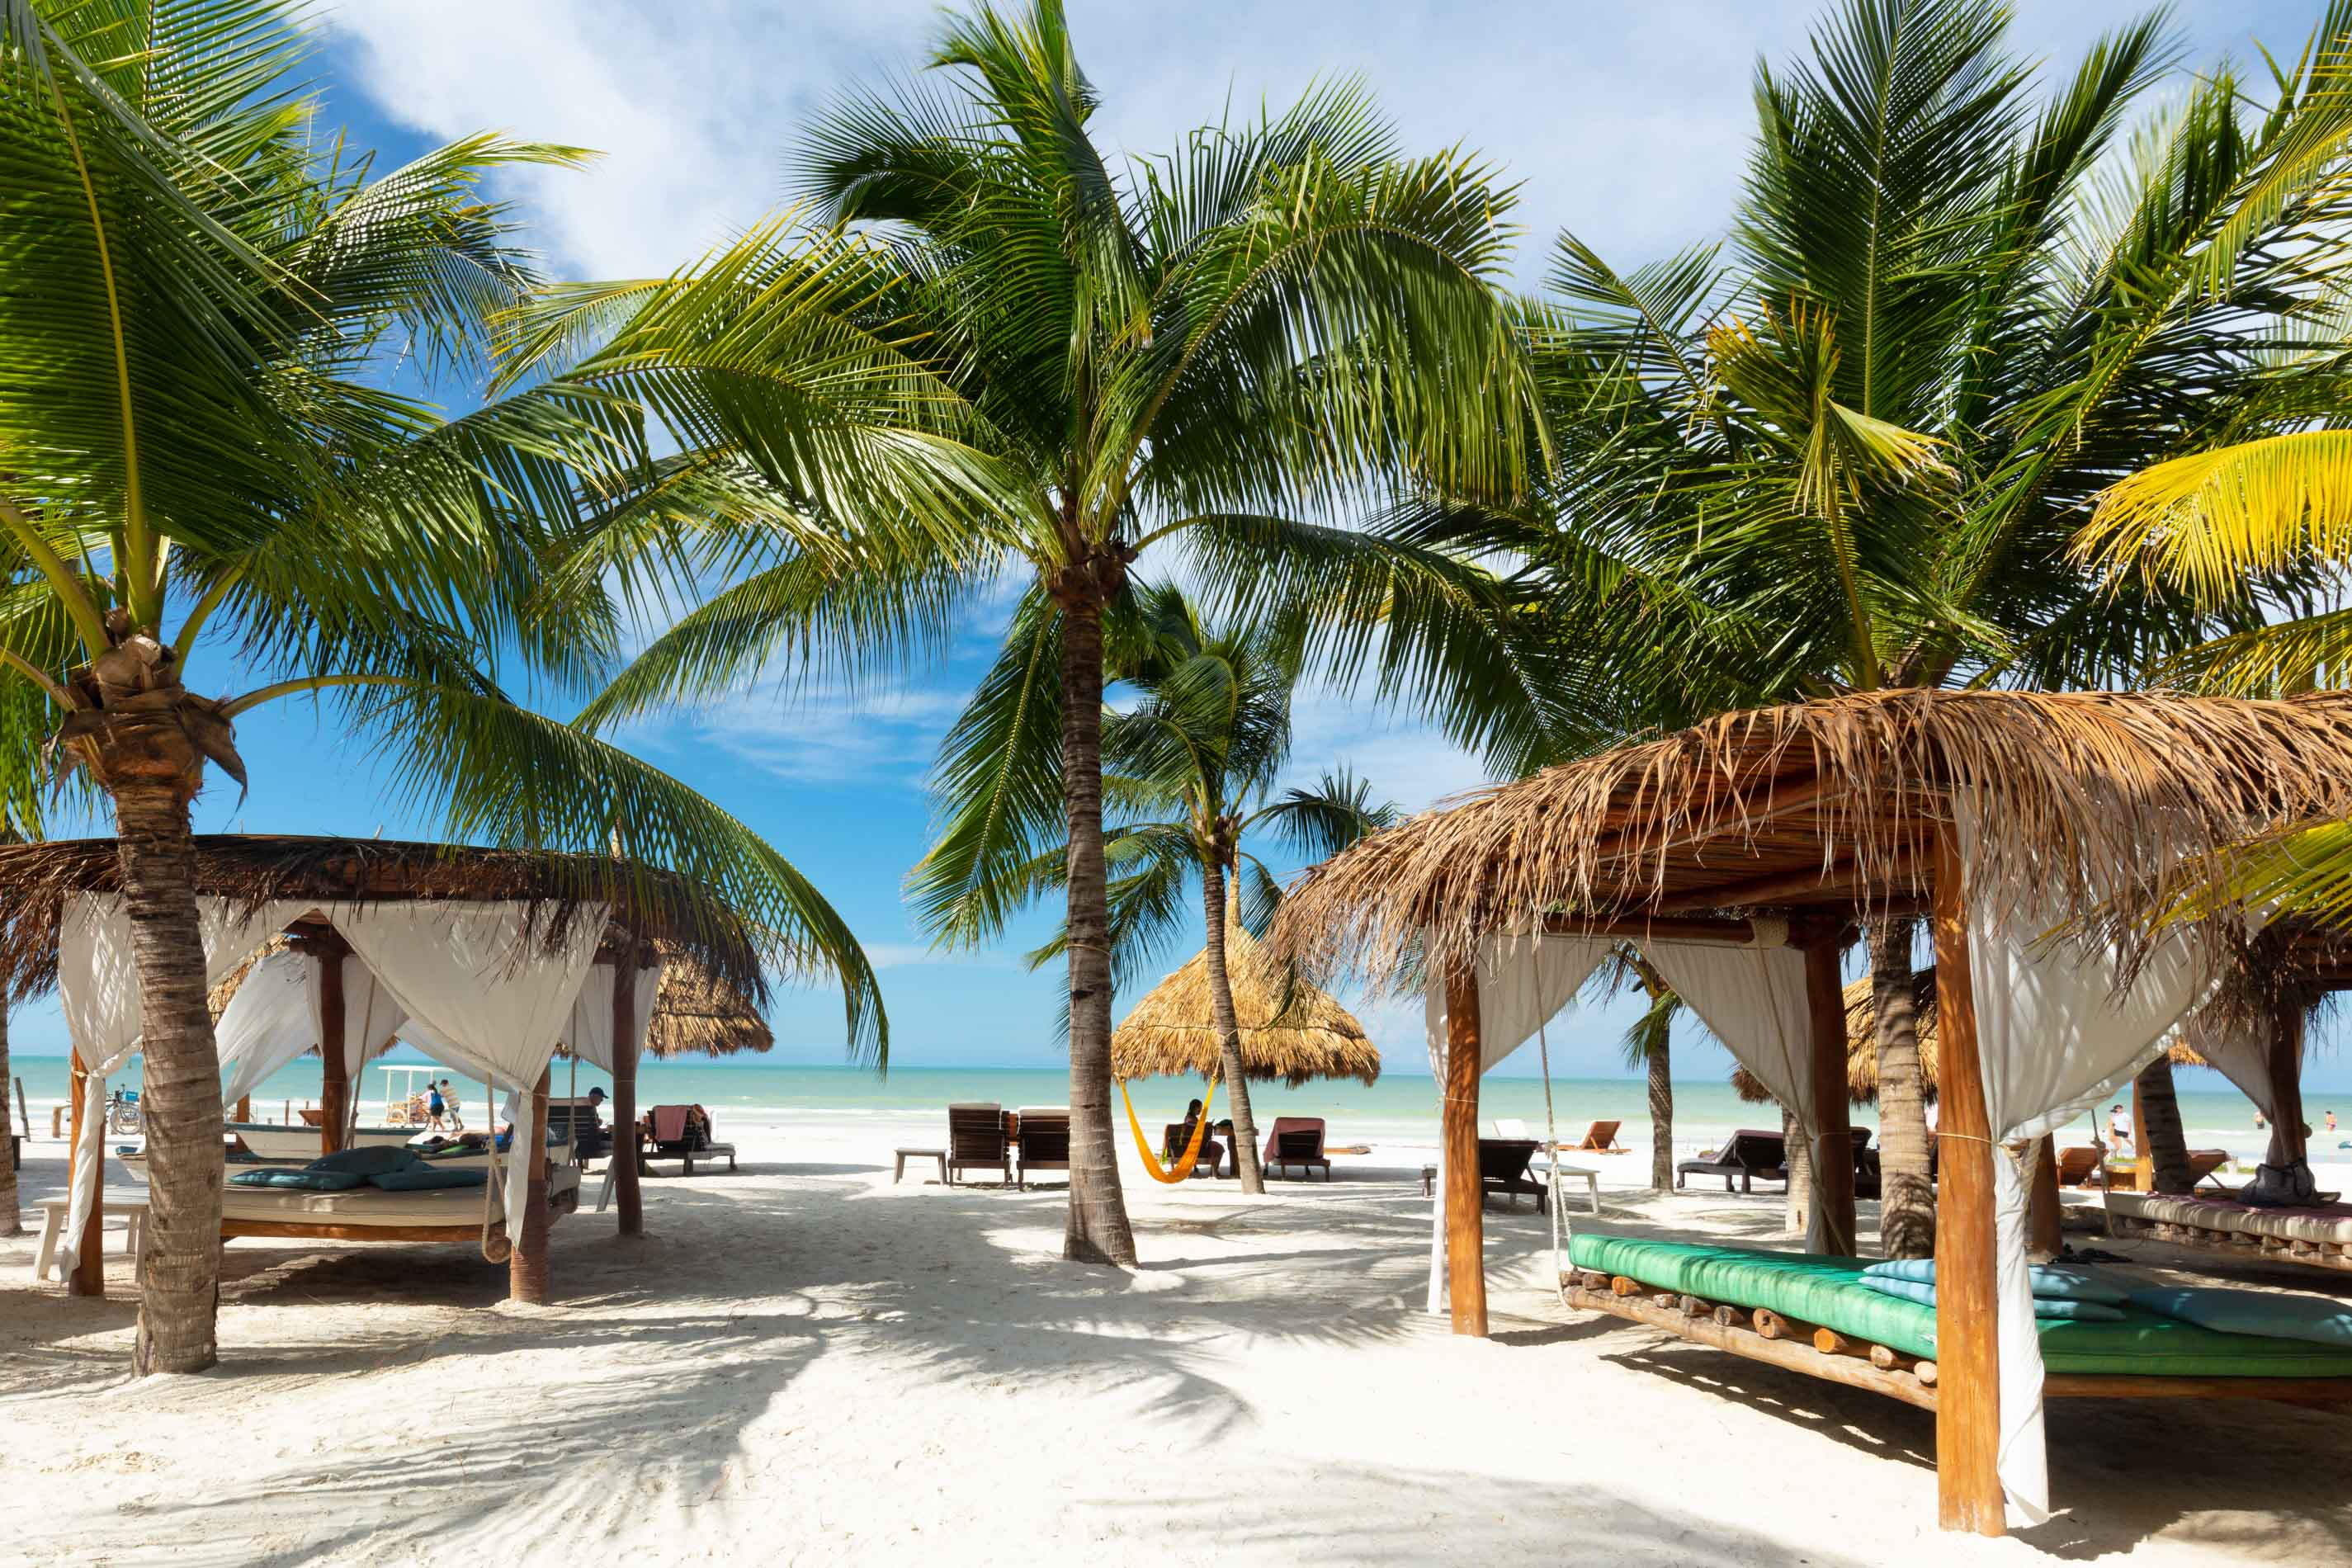 52 Places to Go/ Isla Holbox, Mexico